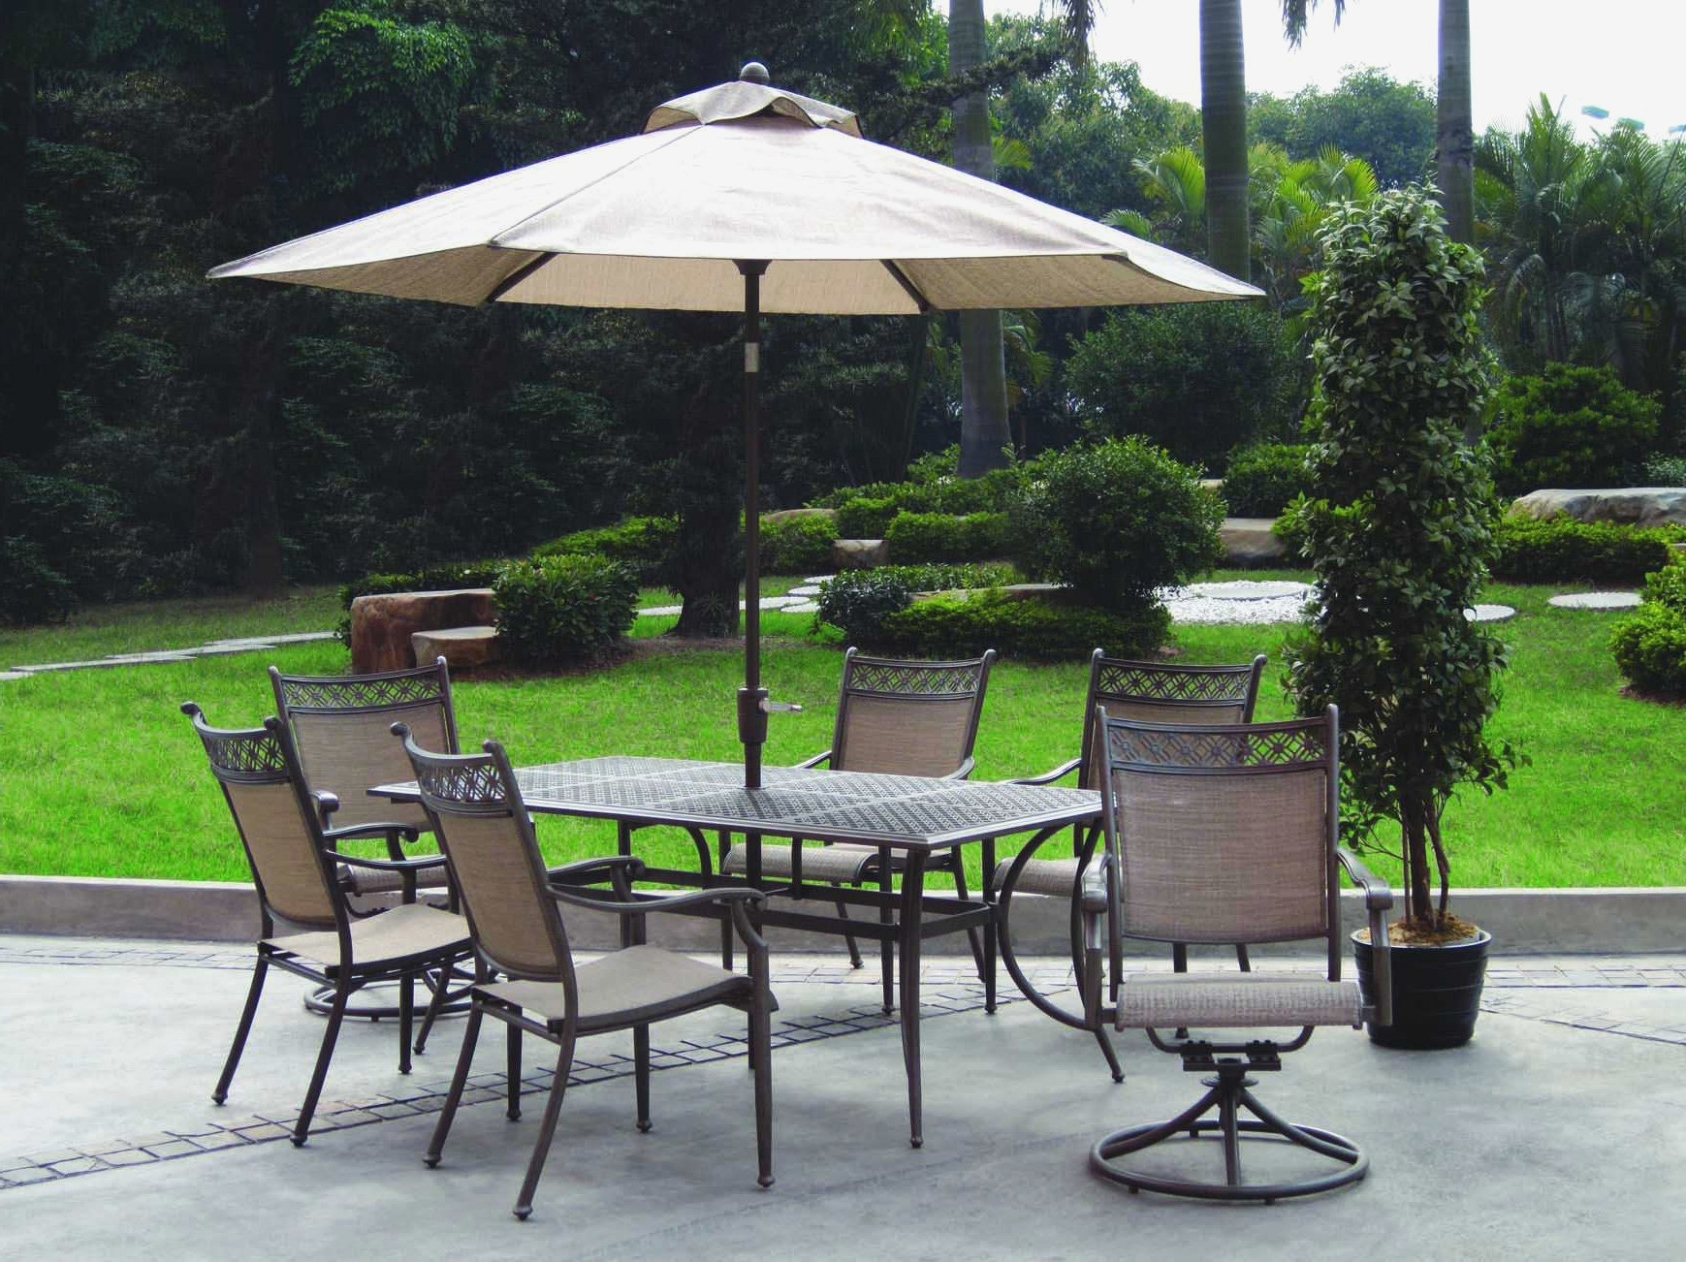 Current Enchanting Cheap Patio Umbrellas With Furniture Alluring Collection Throughout Cheap Patio Umbrellas (View 20 of 20)